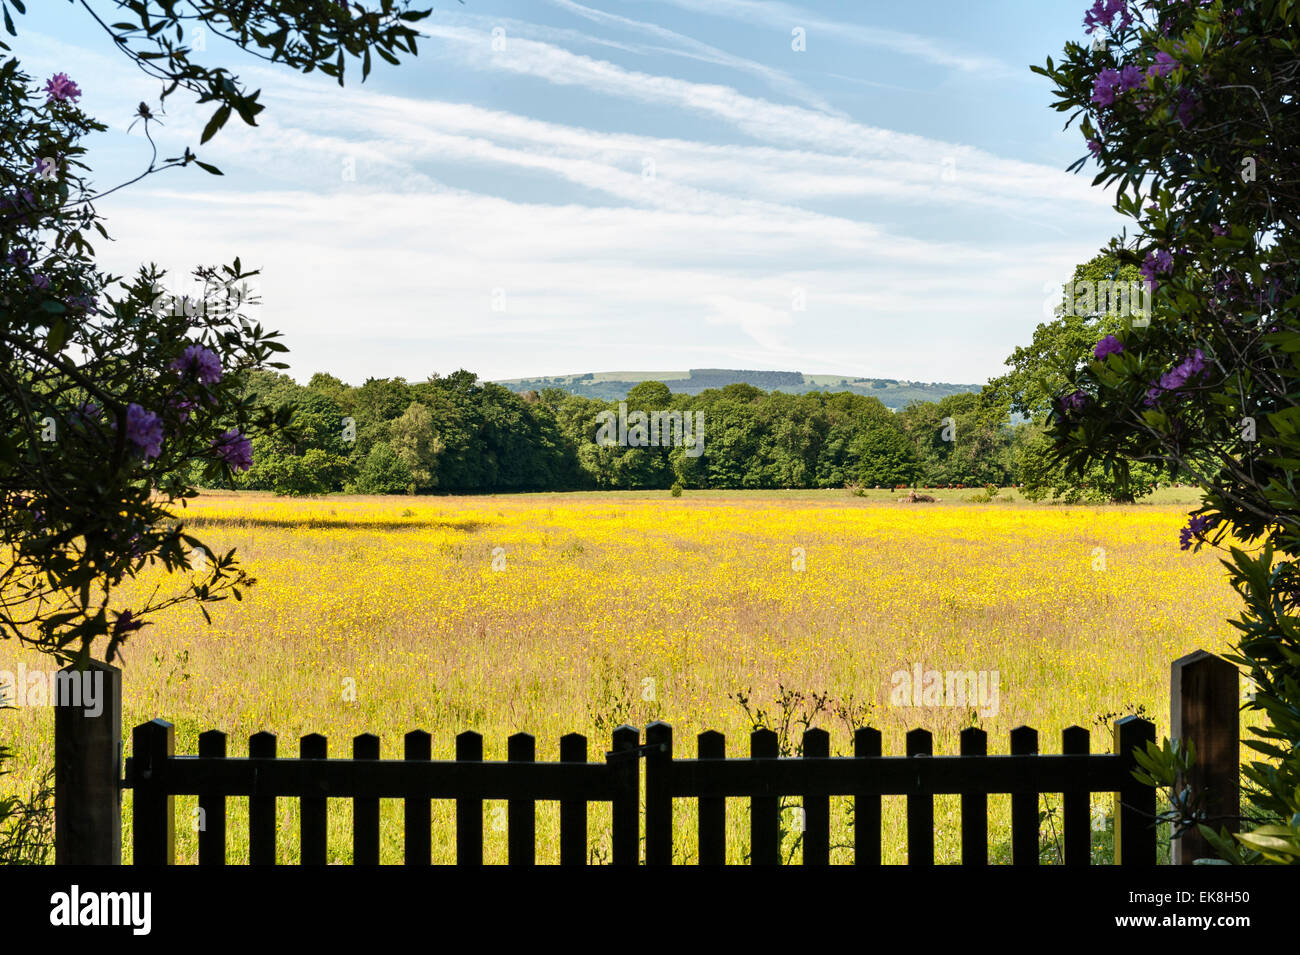 Near Raglan, Monmouthshire, Wales, UK. View near Clytha Castle into Clytha Park - a meadow of buttercups in summer - Stock Image